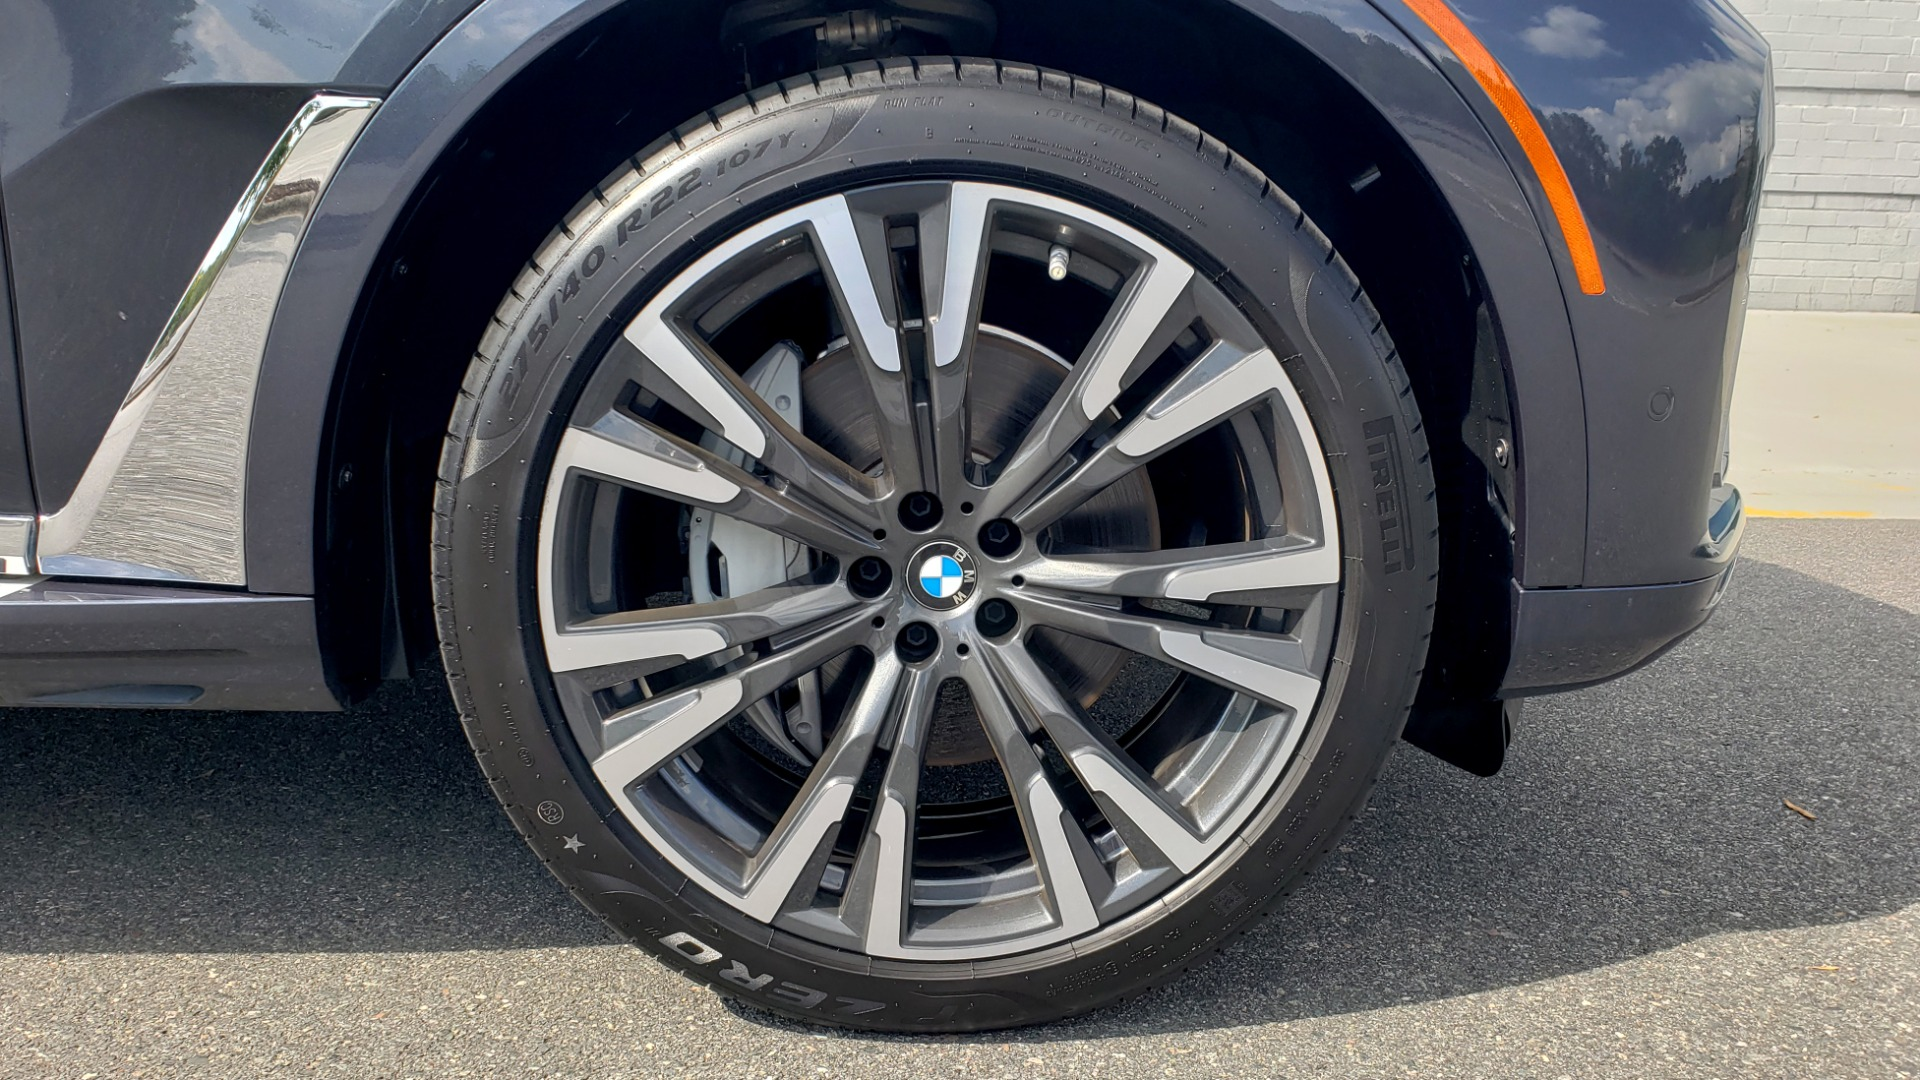 Used 2019 BMW X7 XDRIVE40I PREMIUM / LUXURY / COLD WEATHER / PARK ASST / PANORAMIC SKY / TOW for sale $75,999 at Formula Imports in Charlotte NC 28227 101